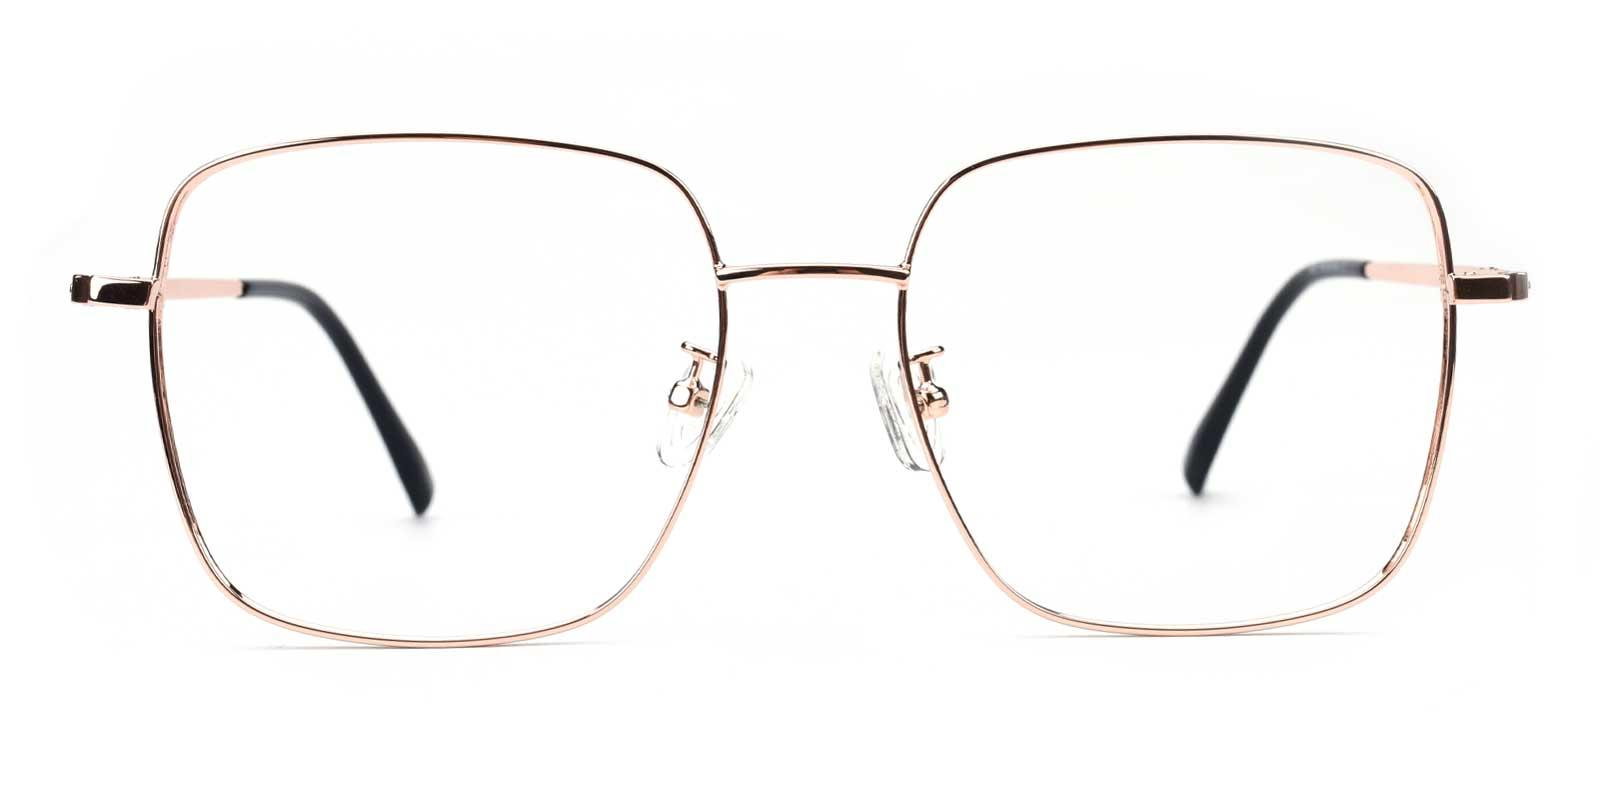 Kelly-Gold-Square-Metal-Eyeglasses-additional2